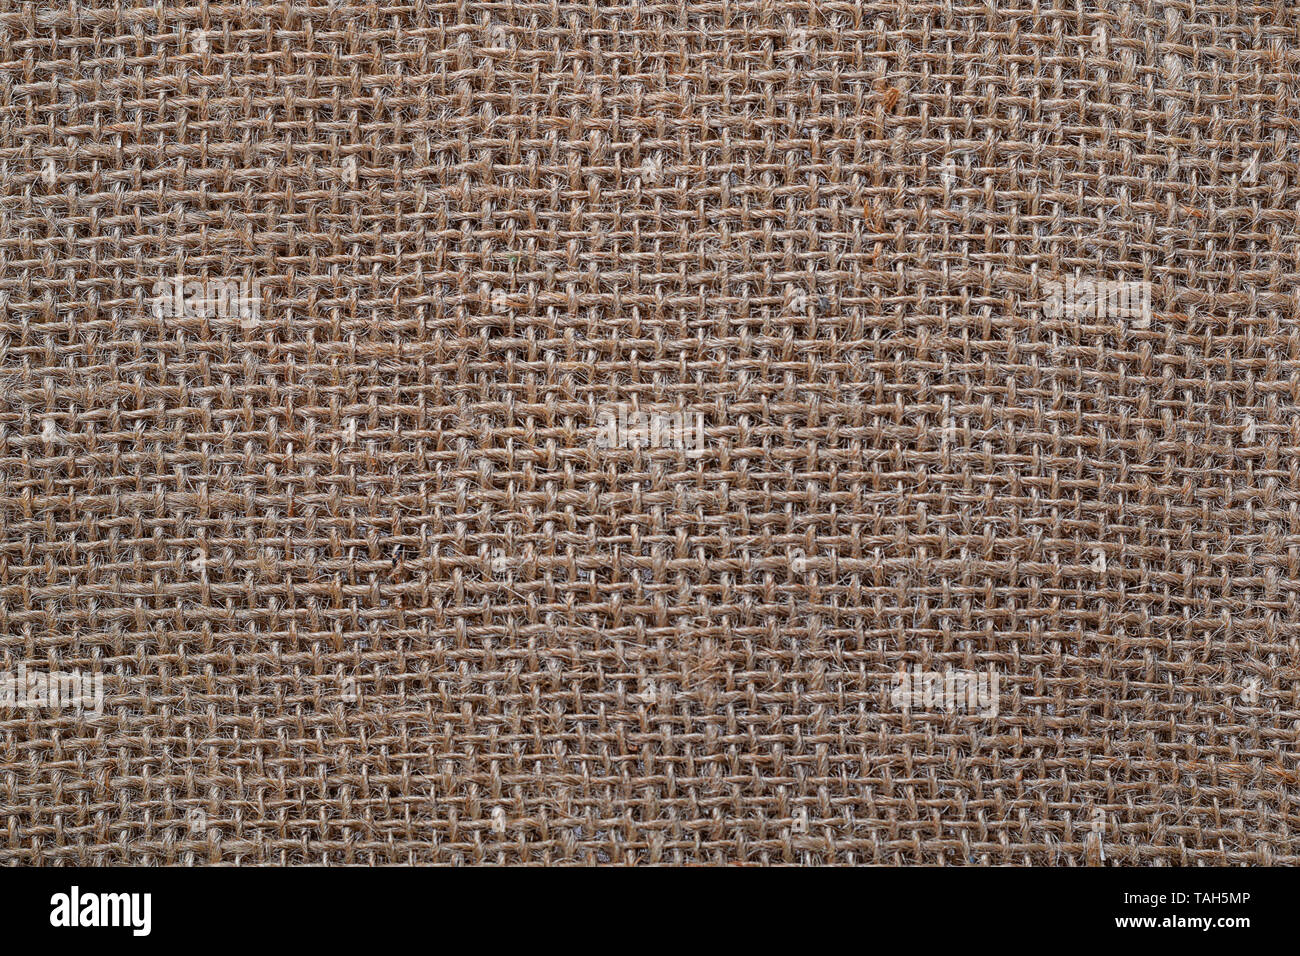 Sackcloth texture background.Old sackcloth close up copy space for text and design on sackcloth textured background - Stock Image